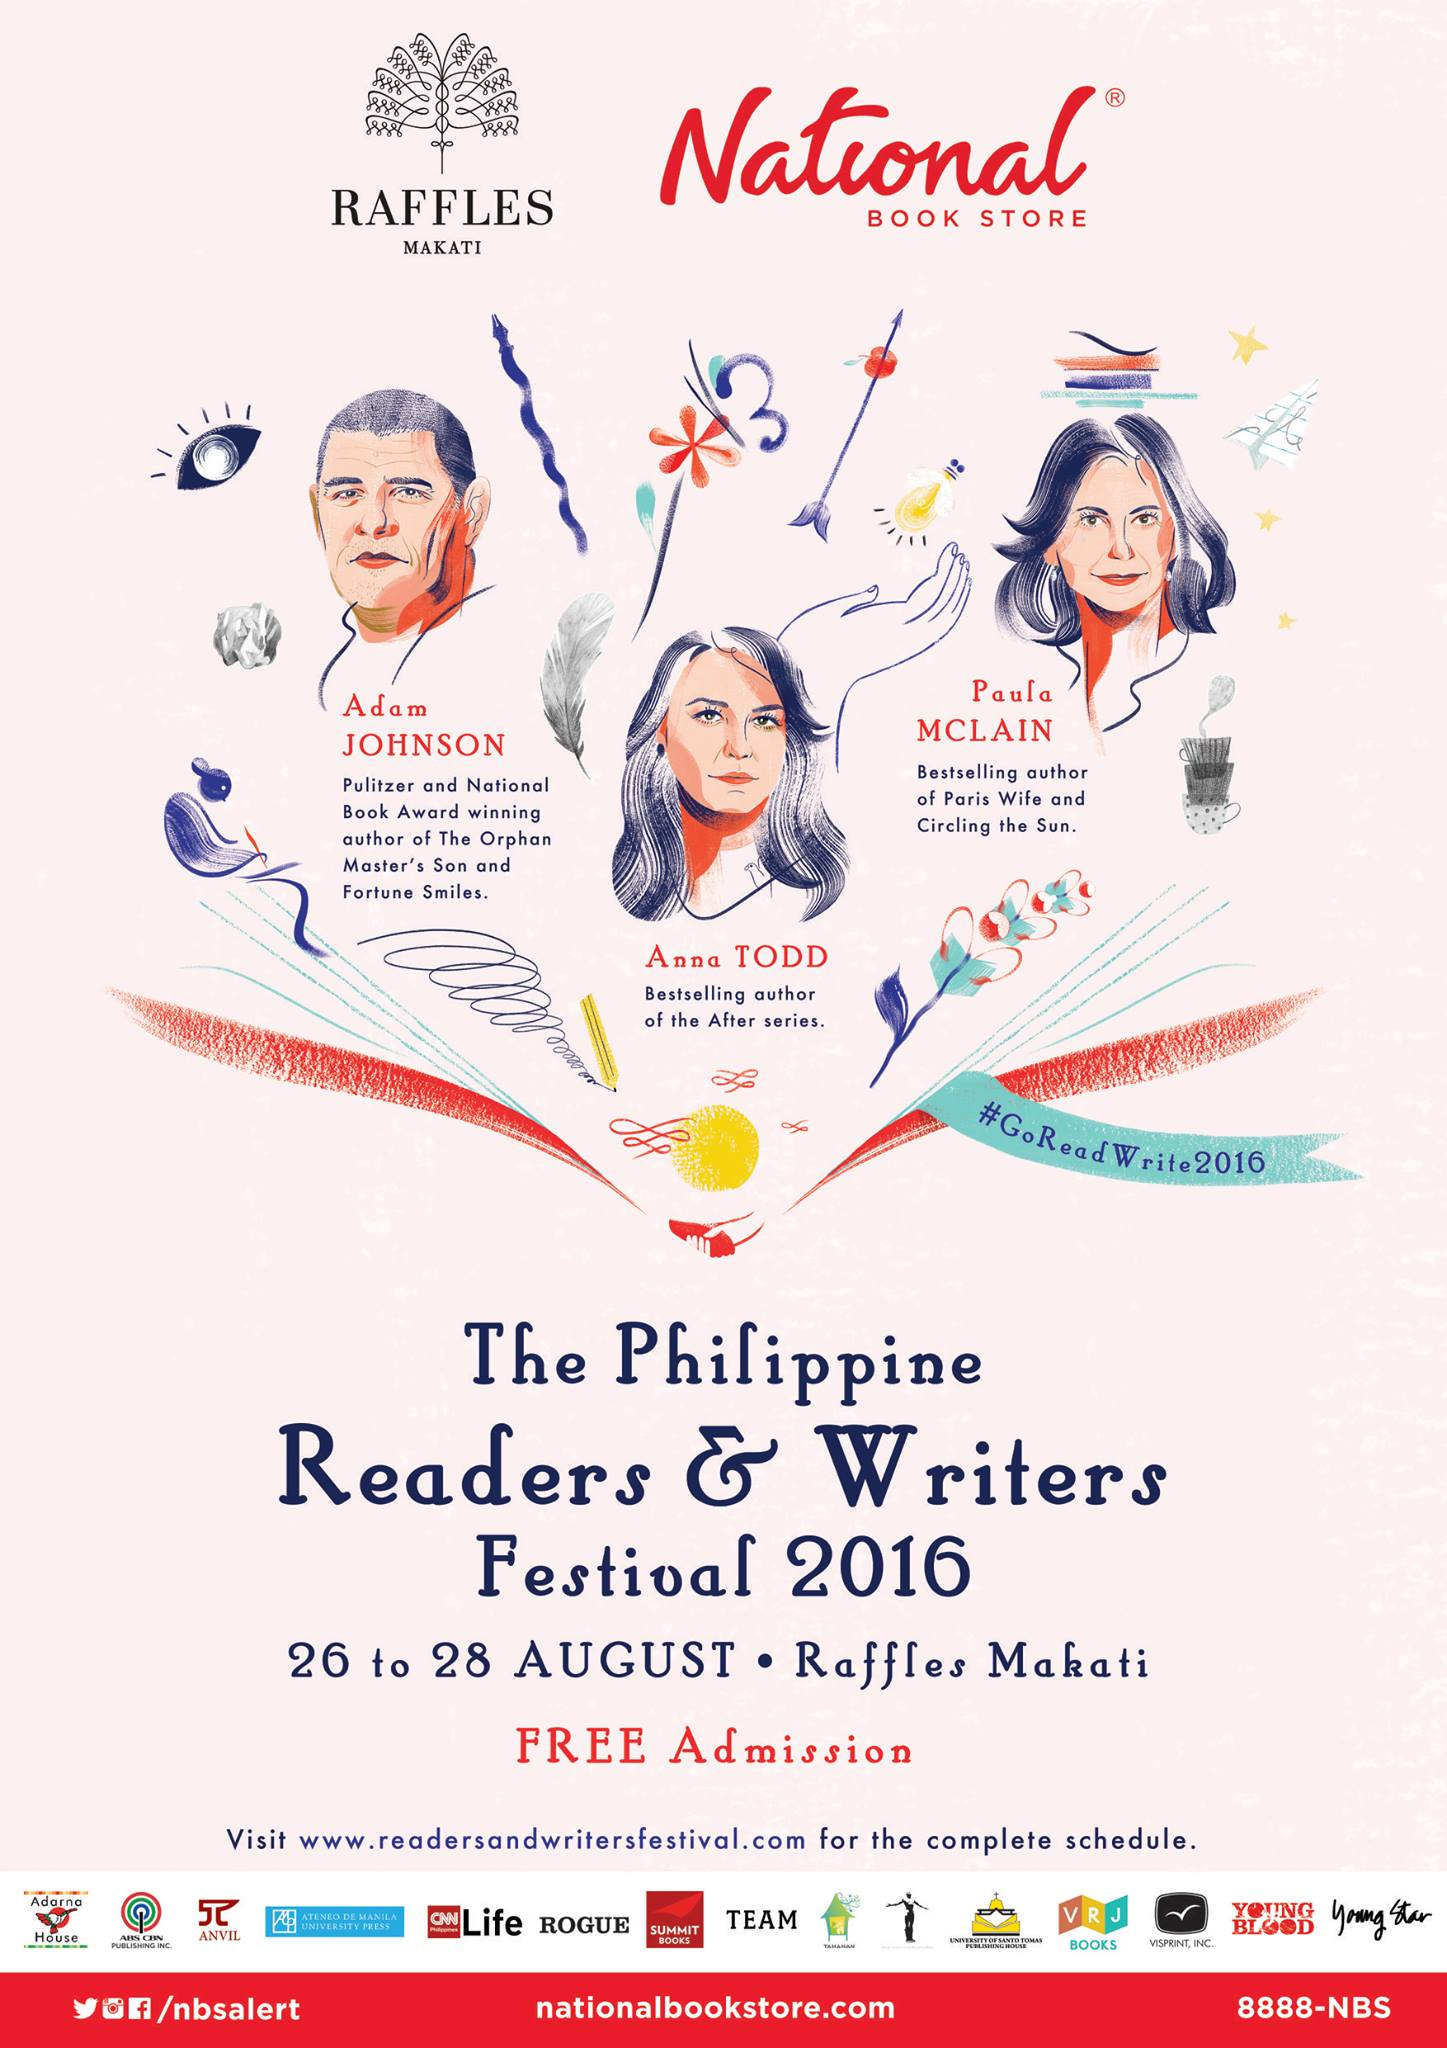 The Philippine Readers and Writers Festival